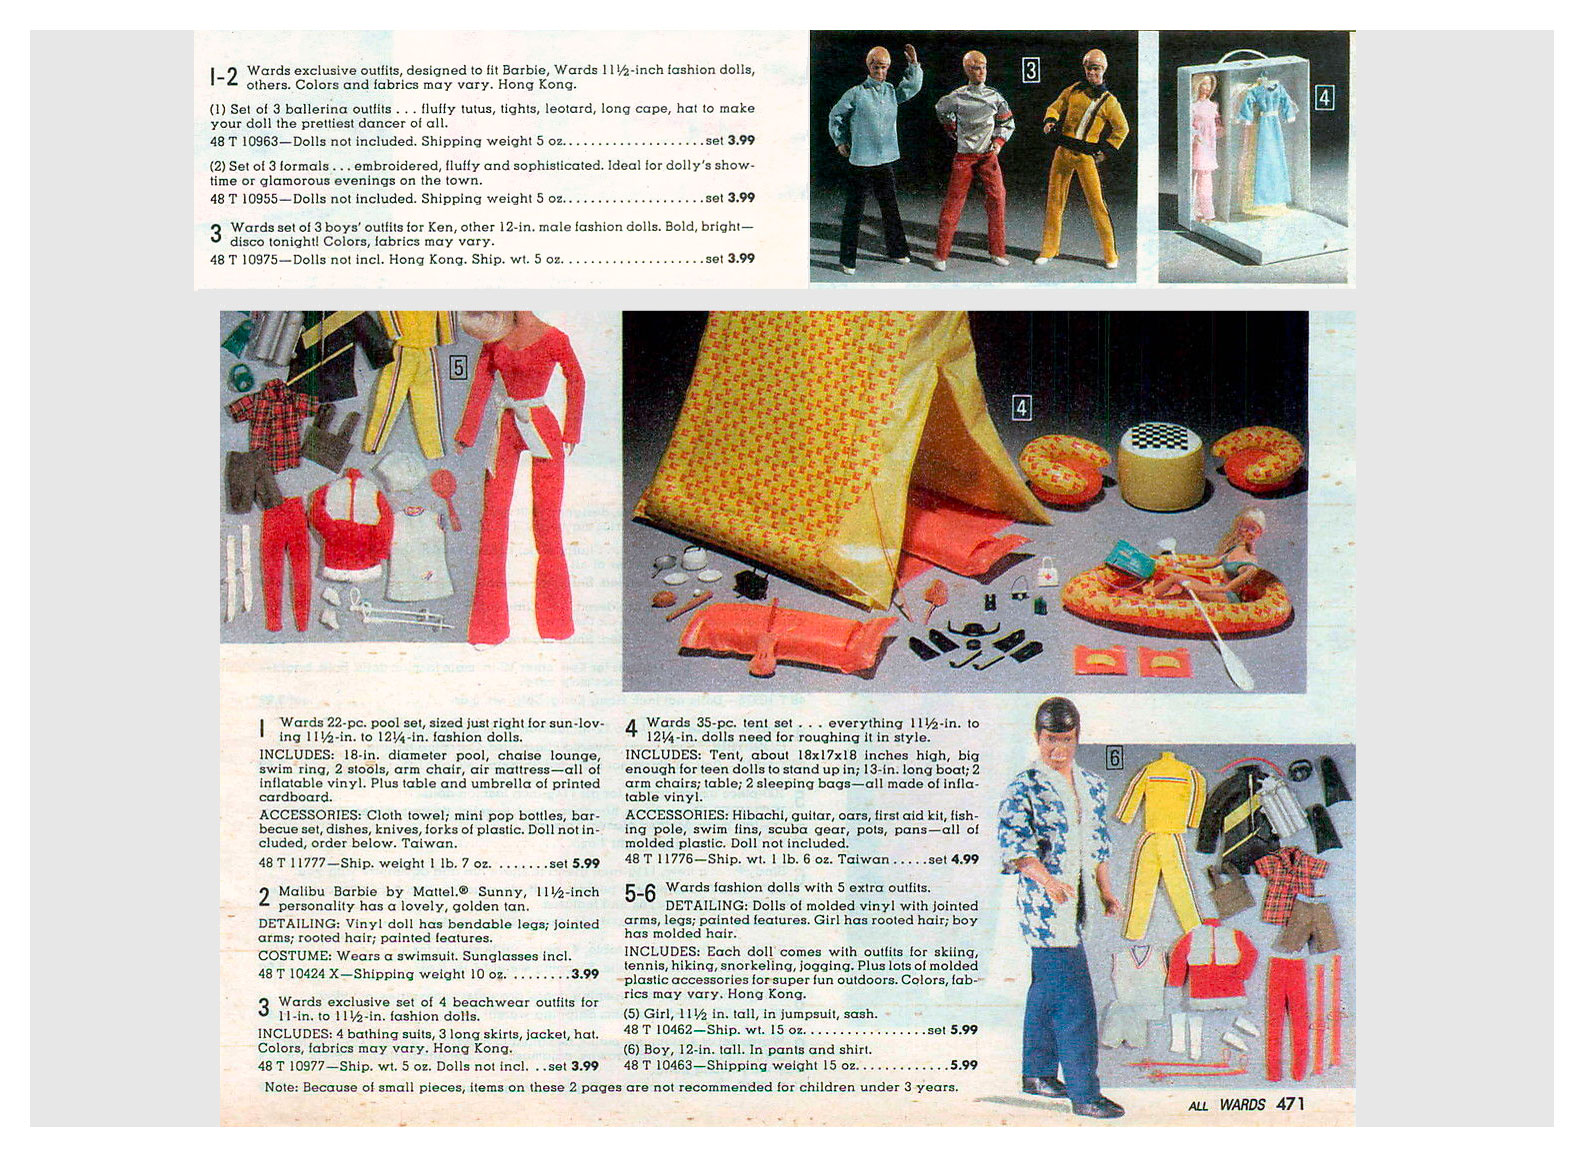 From 1979 Montgomery Ward Christmas catalogue